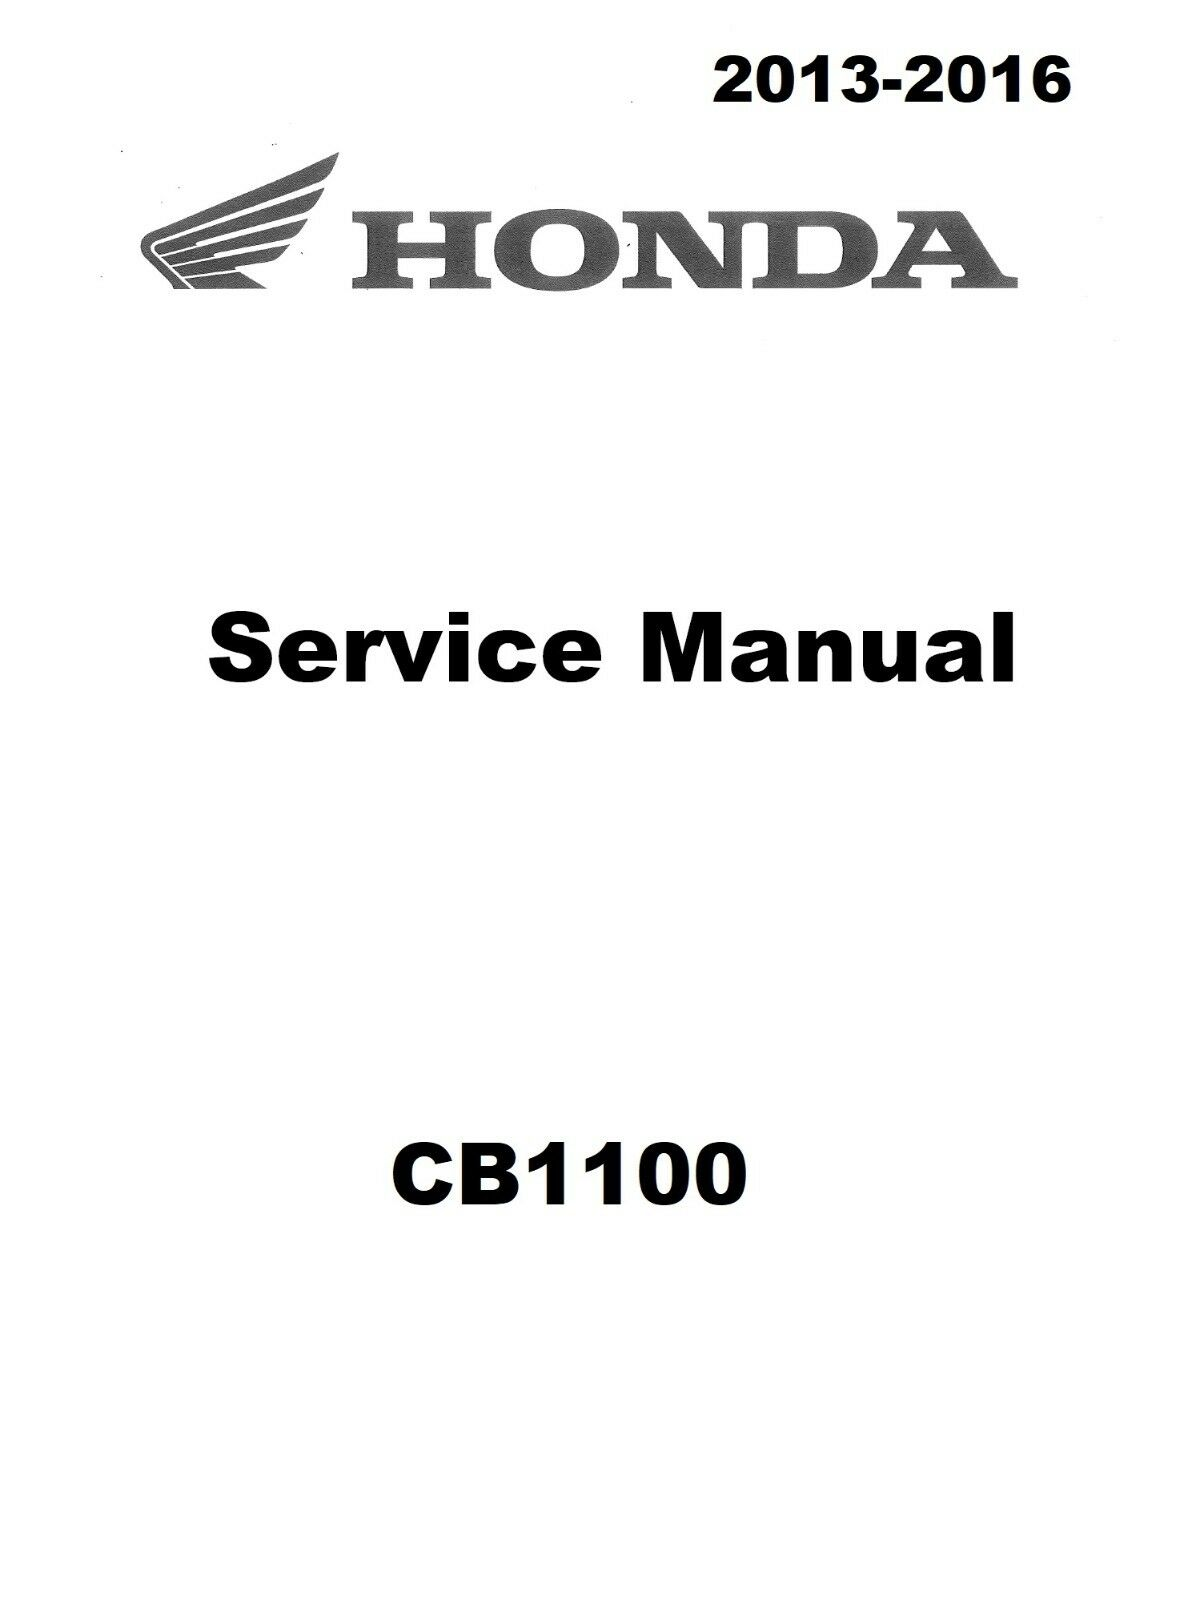 Honda CB1100 2013 2014 2015 2016 CB 1100 service manual in 3-ring binder 1  of 4Only 1 available ...